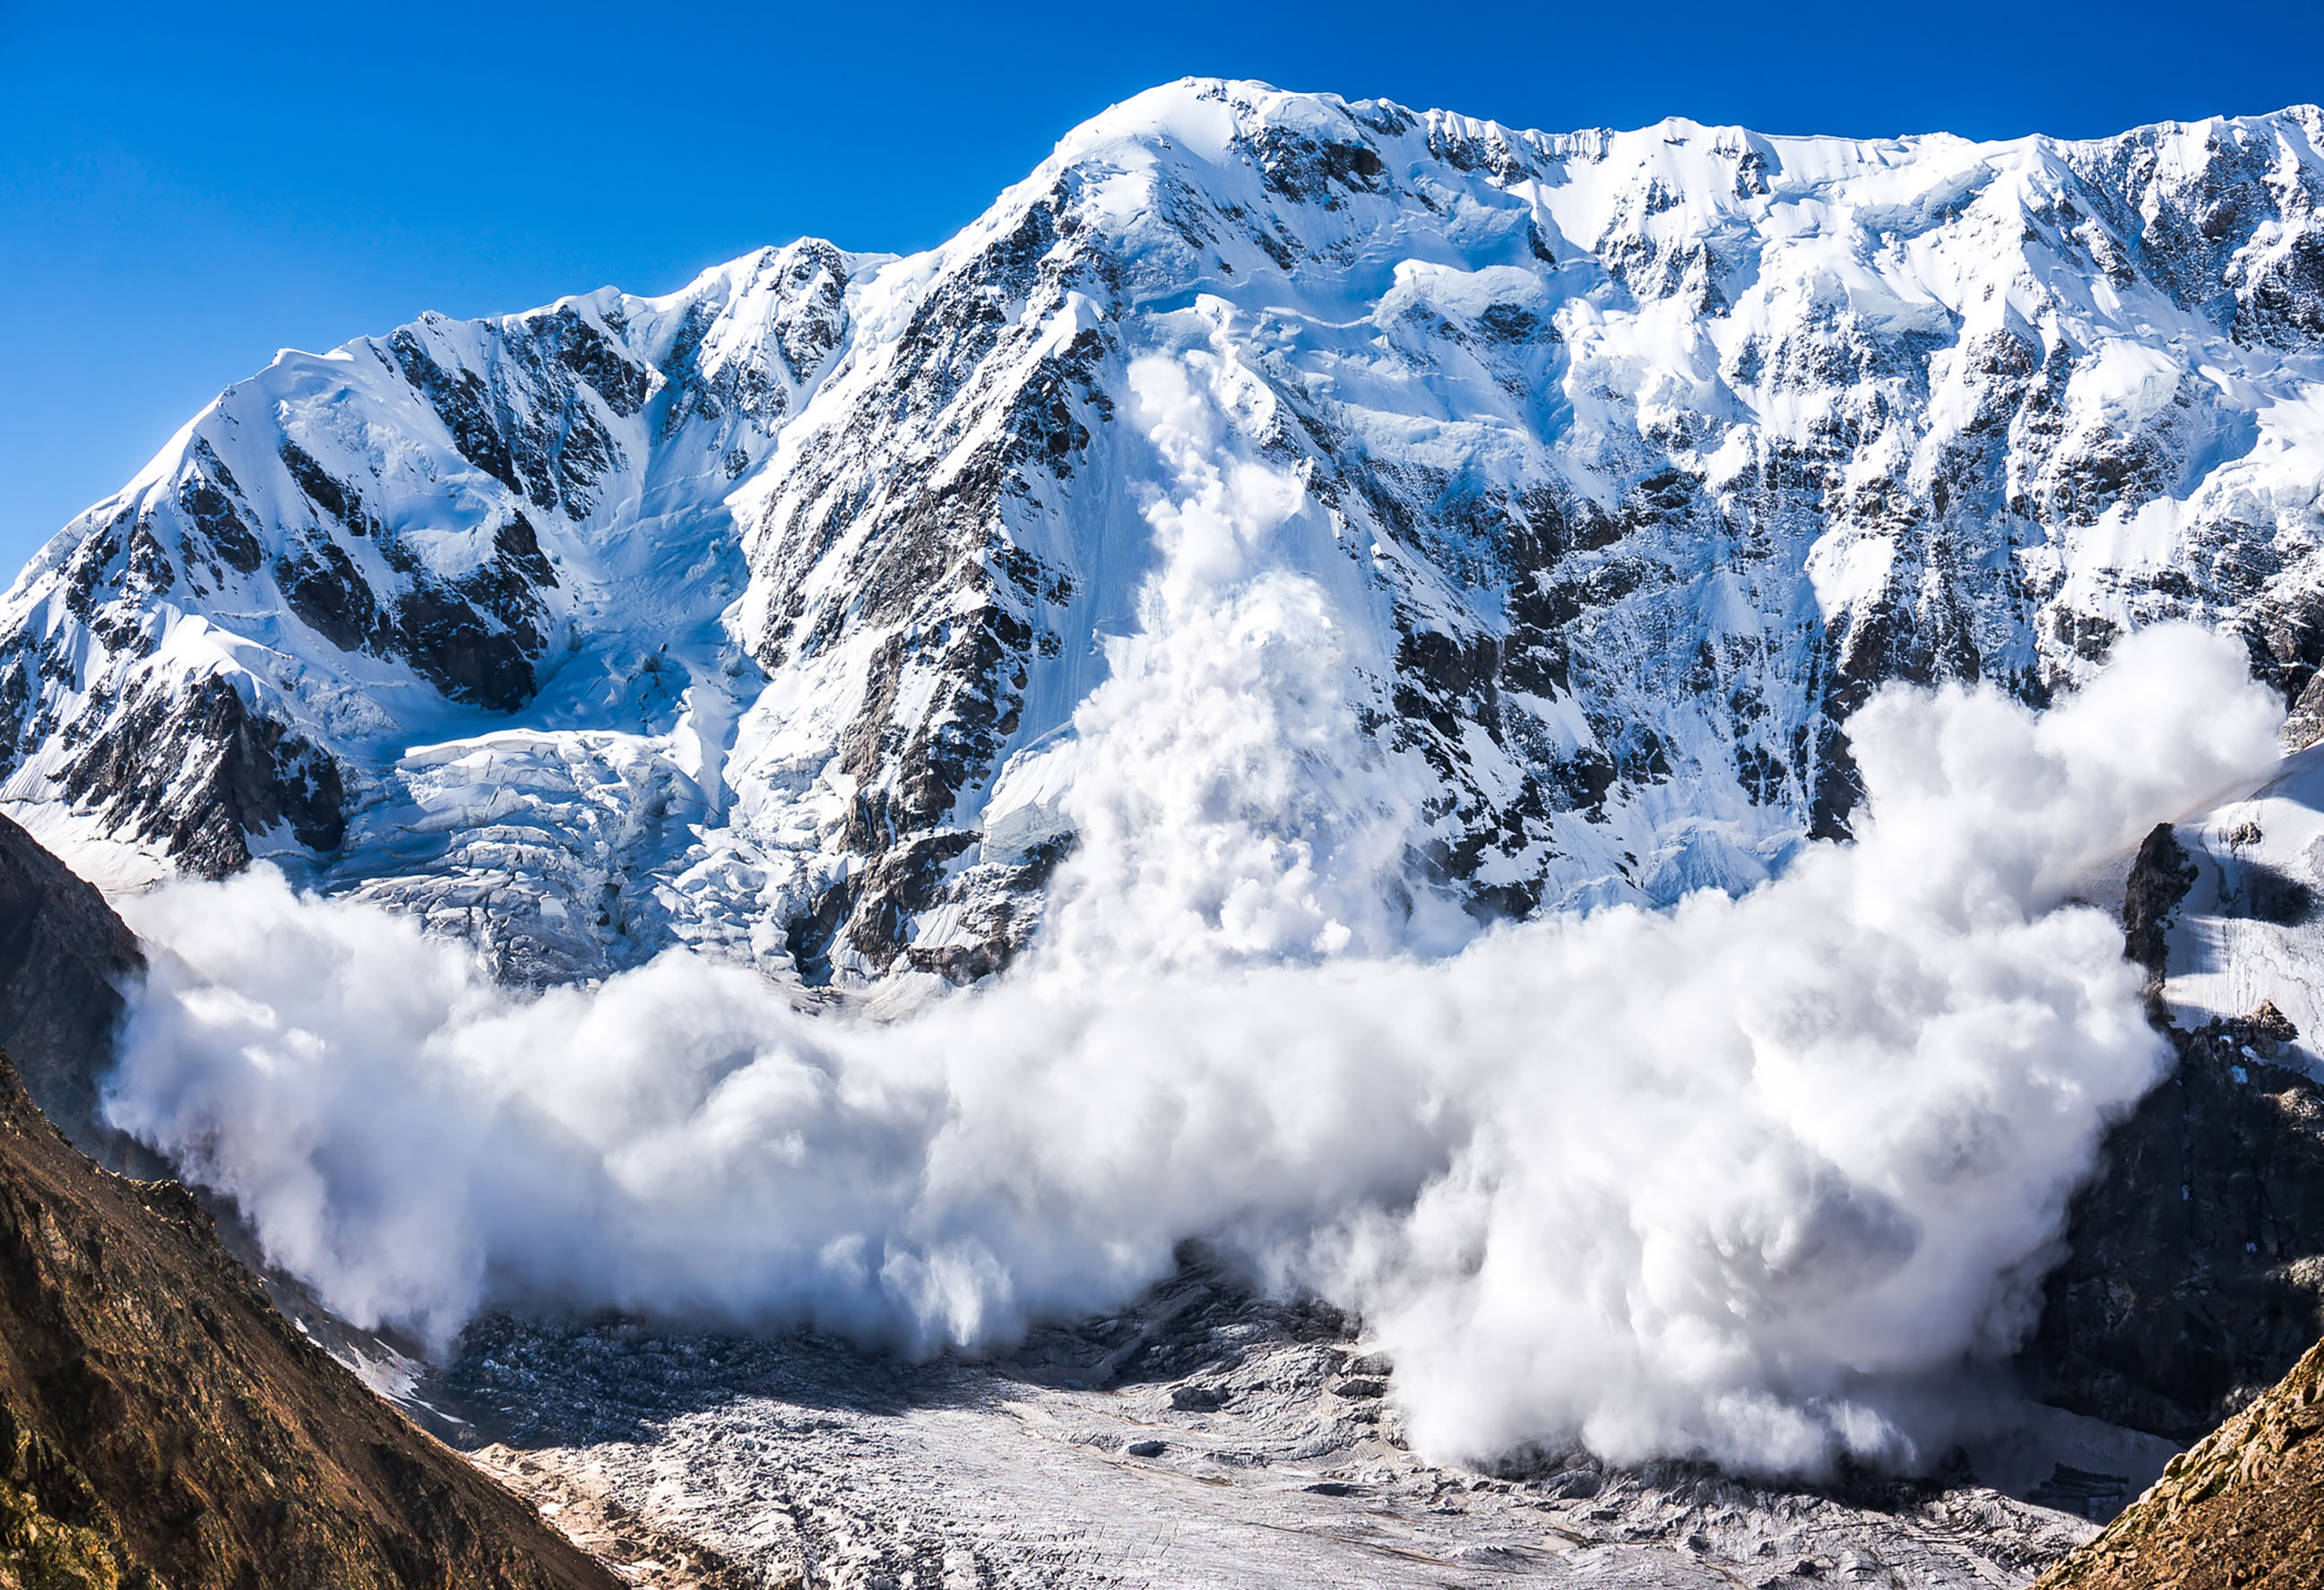 An avalanche of white snow descents from a central point on the mountain face in the center of the image. Avalanches can be controlled and prevented just like PR crises.